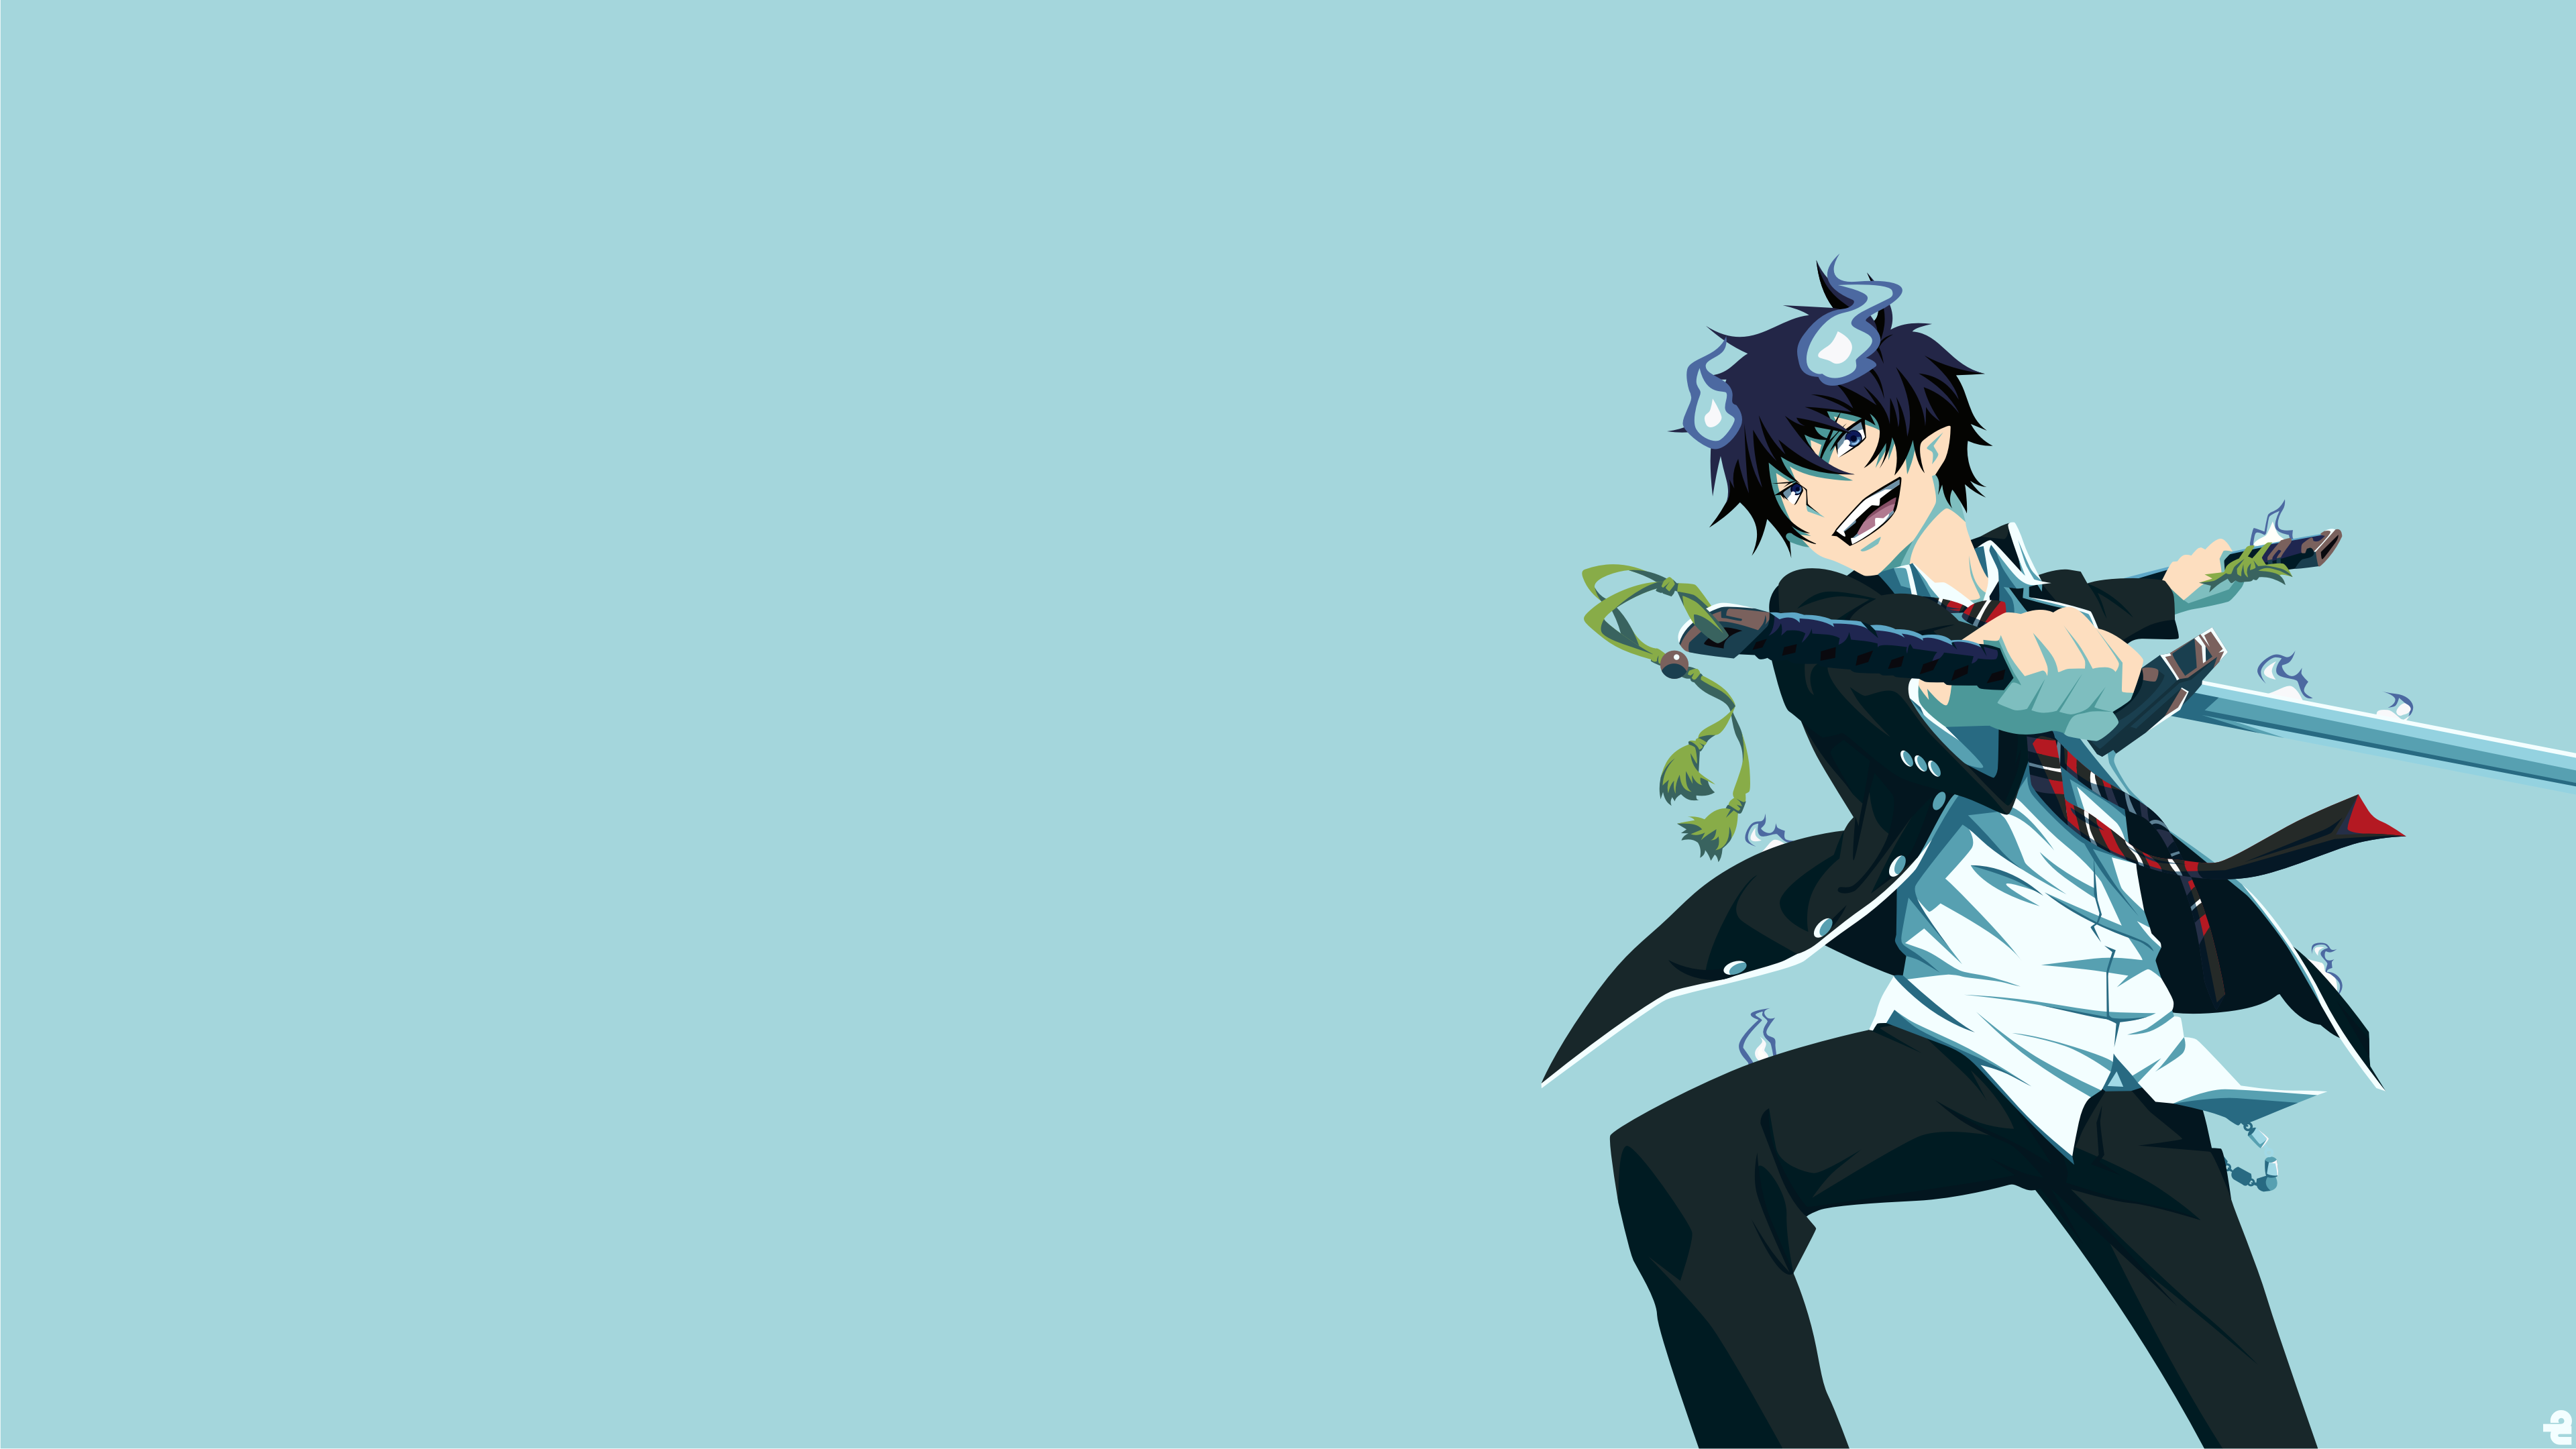 Blue Exorcist 4k Ultra Hd Wallpaper Background Image 3840x2160